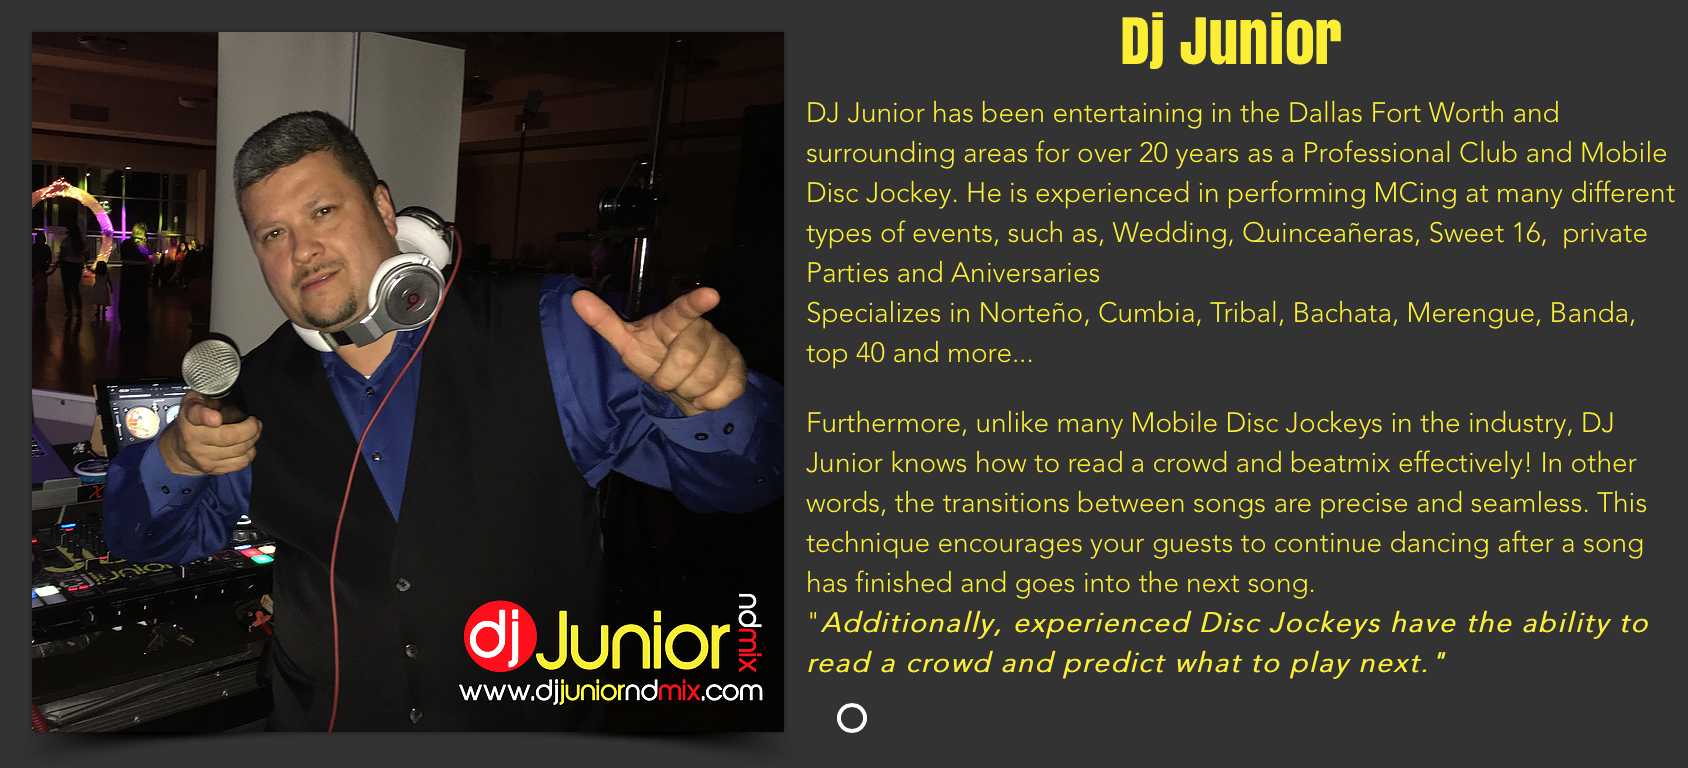 dj junior